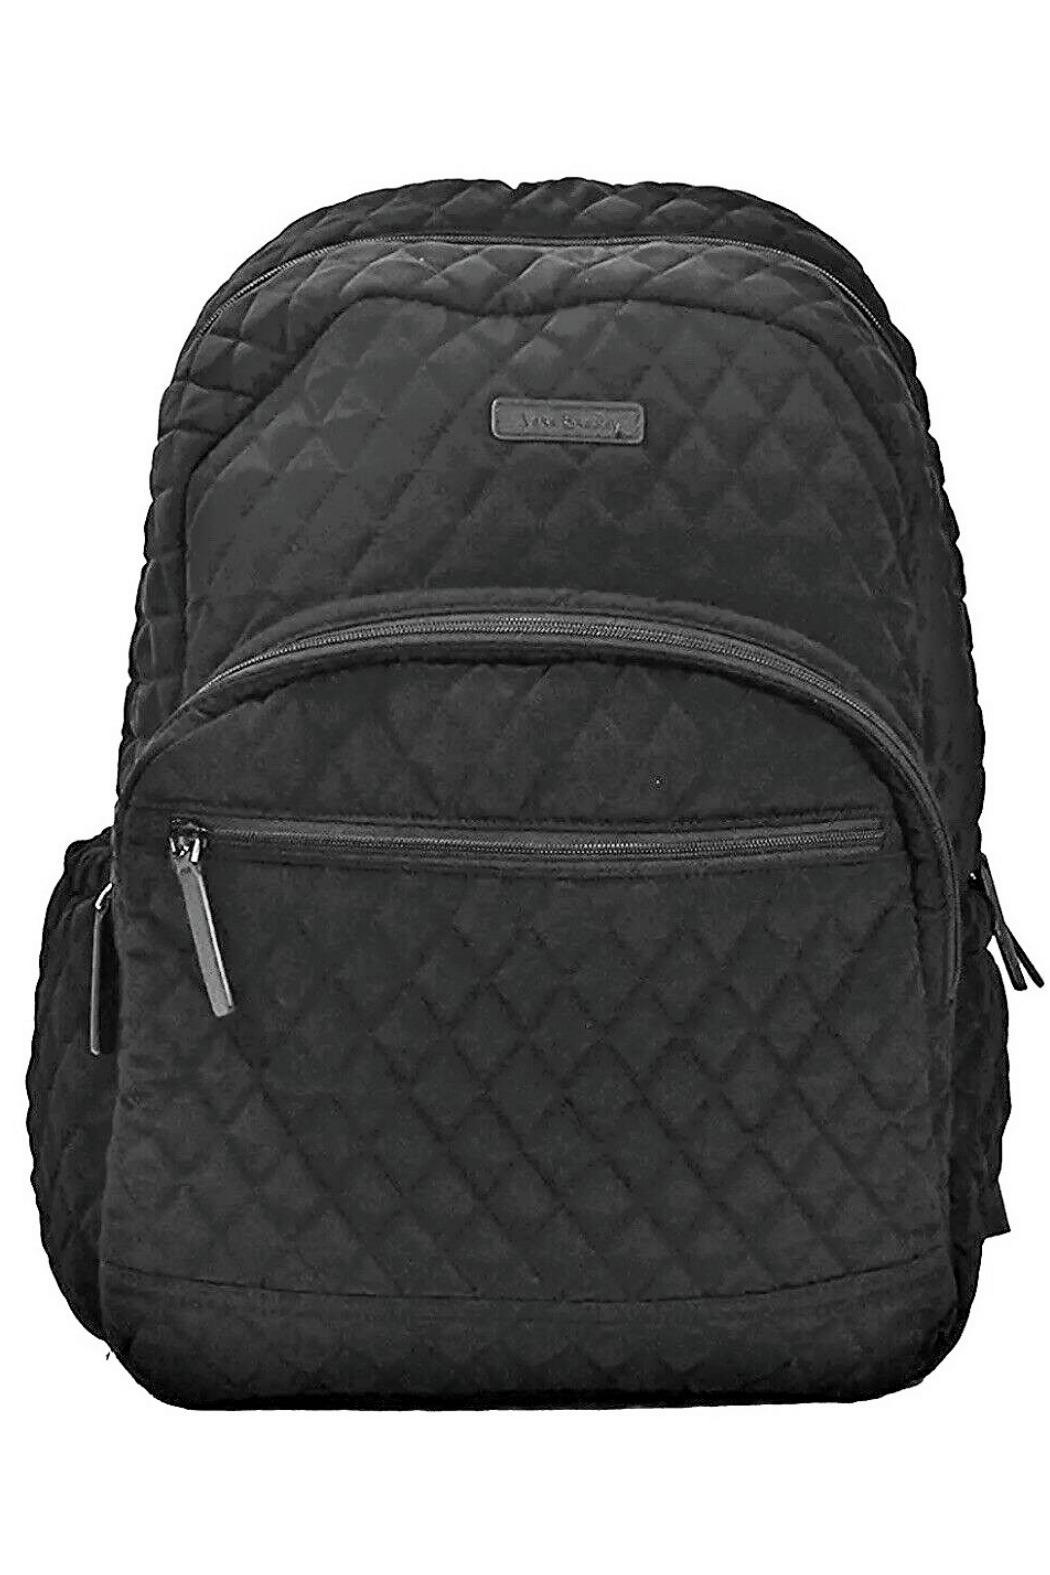 Vera Bradley Large Campus Backpack - Main Image